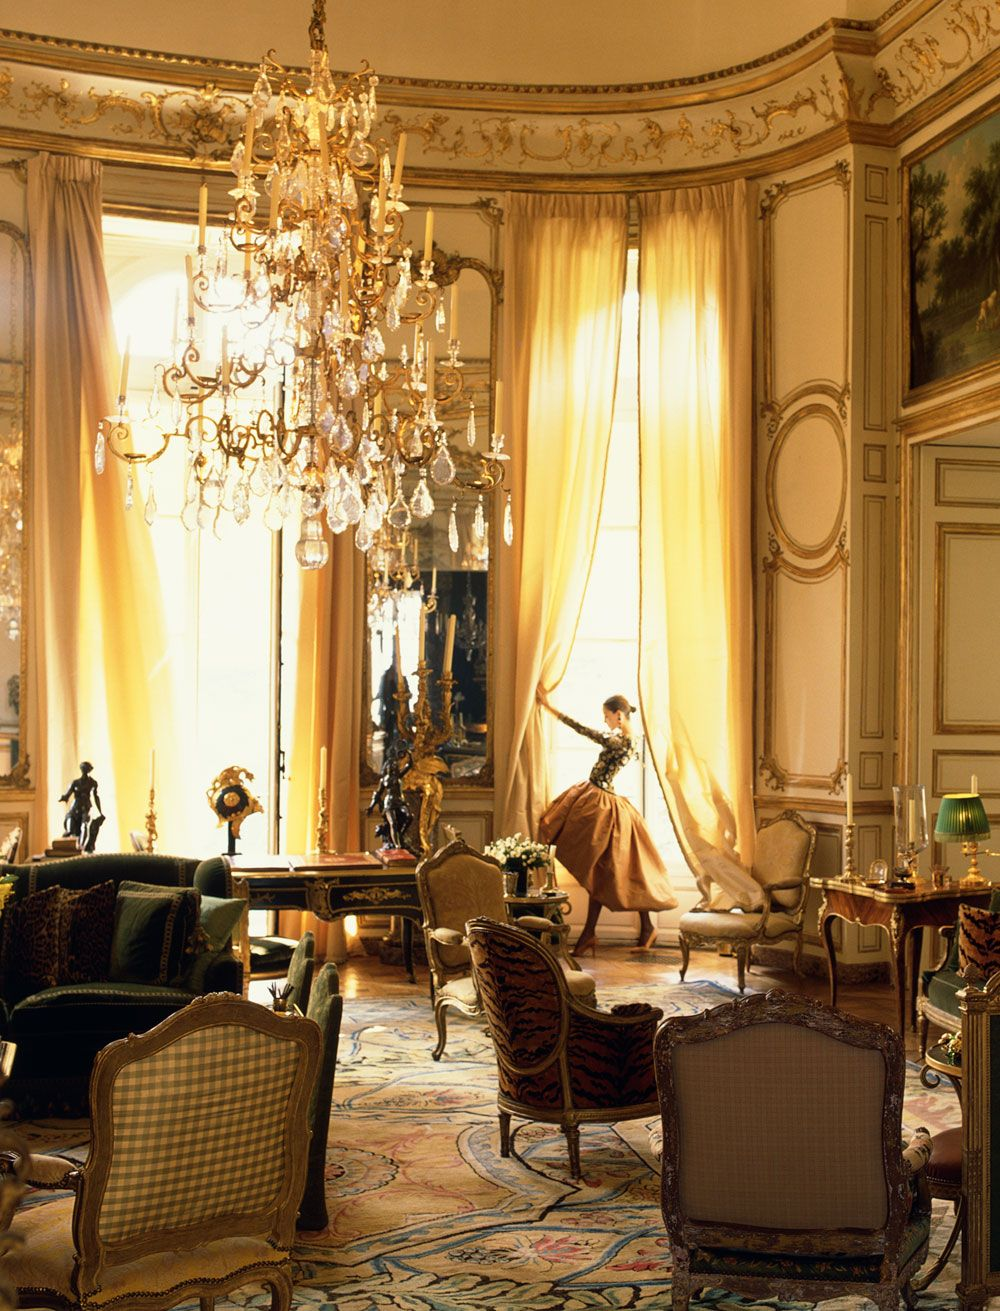 Shabby Castle Chic ♜ Rich And Gorgeous Home Decor   A Salon In Hubert De  Givenchyu0027s Paris Residence, C. 1990   Veranda